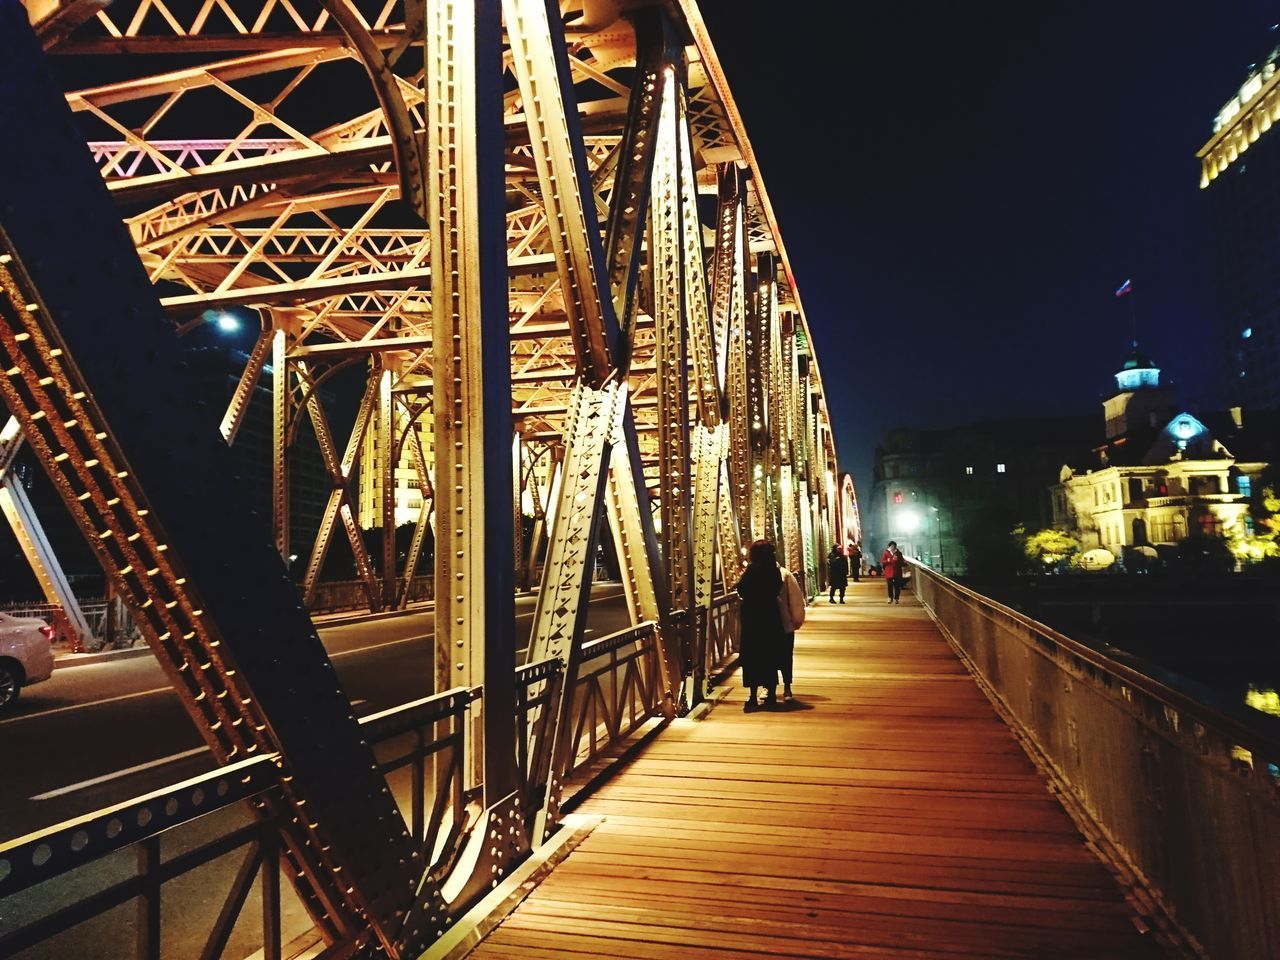 architecture, night, built structure, illuminated, bridge, bridge - man made structure, city, railing, real people, connection, the way forward, direction, building exterior, lifestyles, transportation, one person, men, incidental people, rear view, sky, outdoors, footbridge